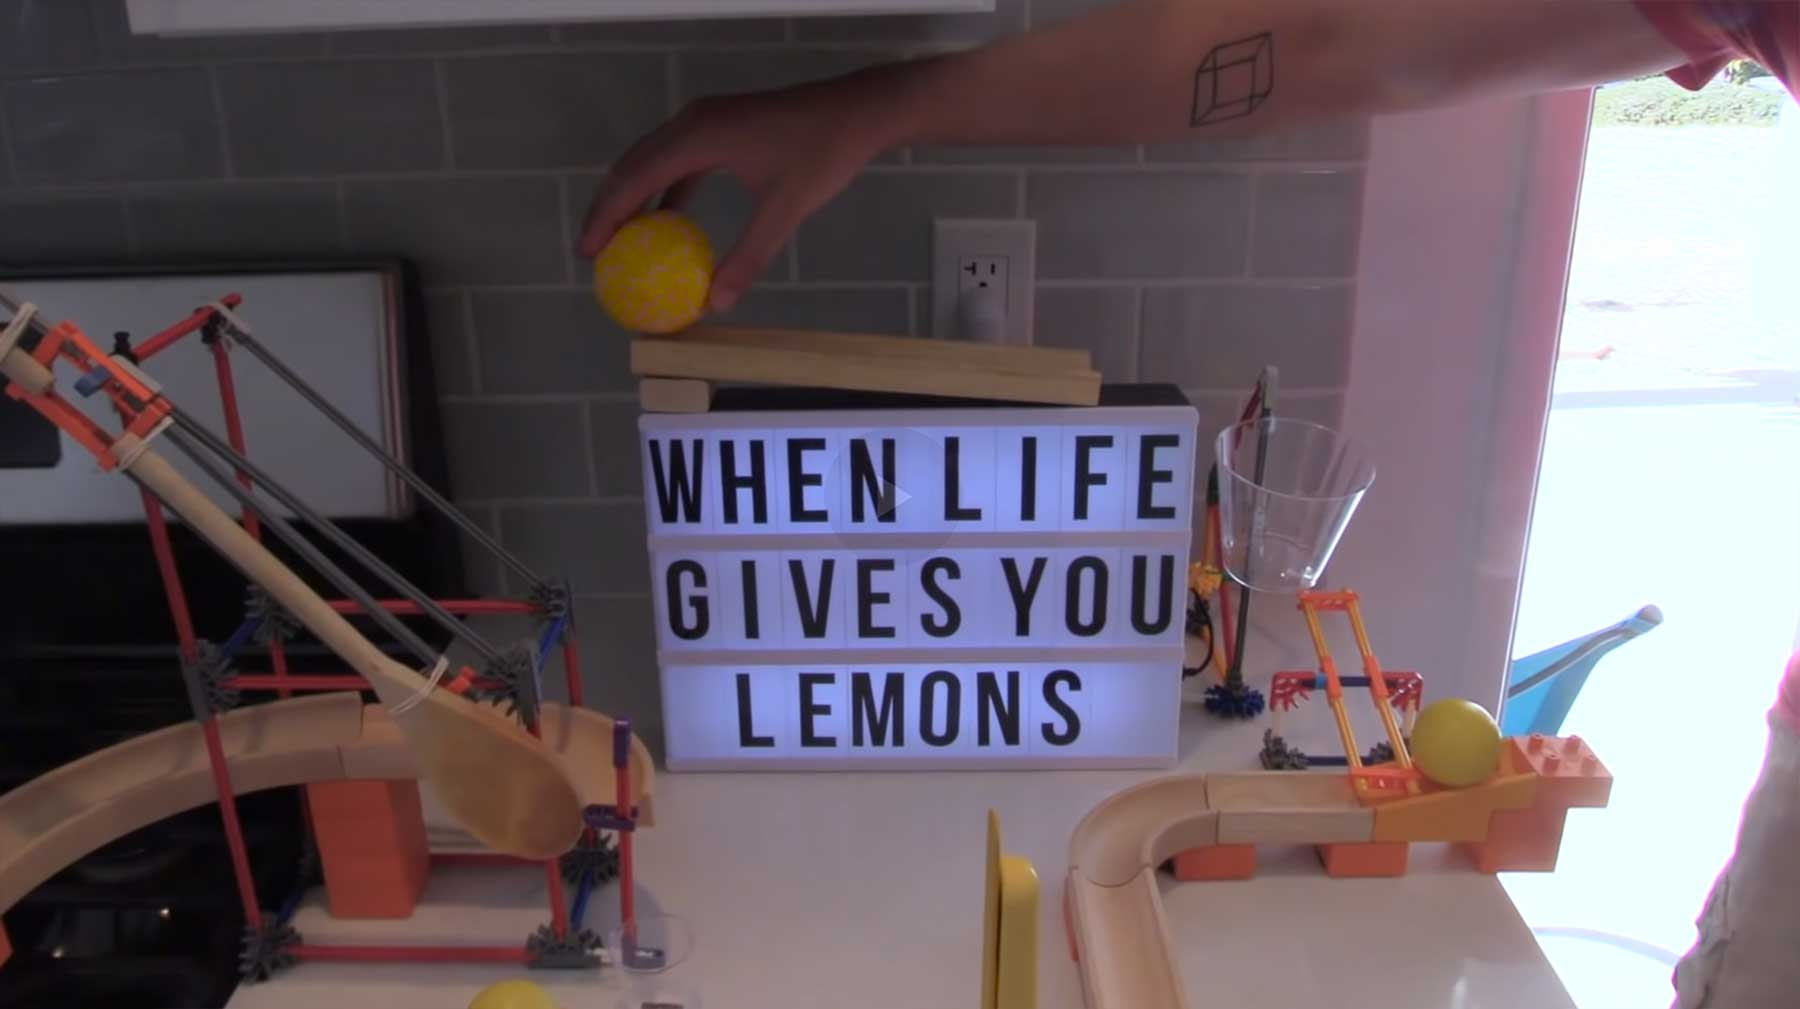 Geniale Kettenreaktion: The Lemonade Machine